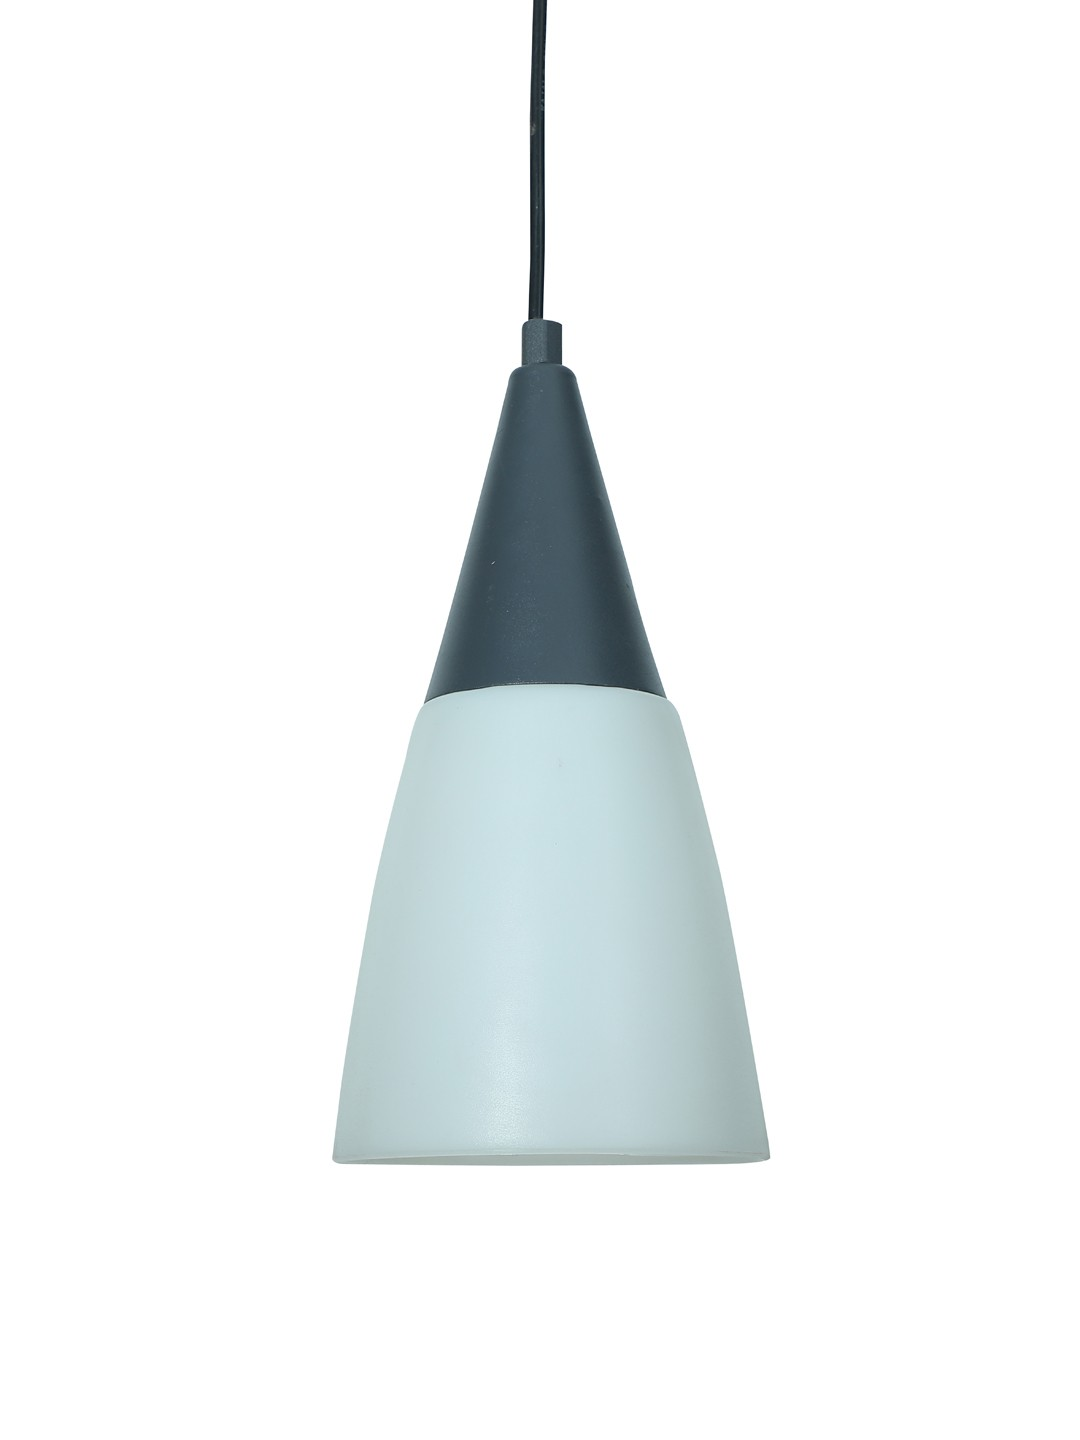 Unbreakable Modern Conical Pendant Lamp